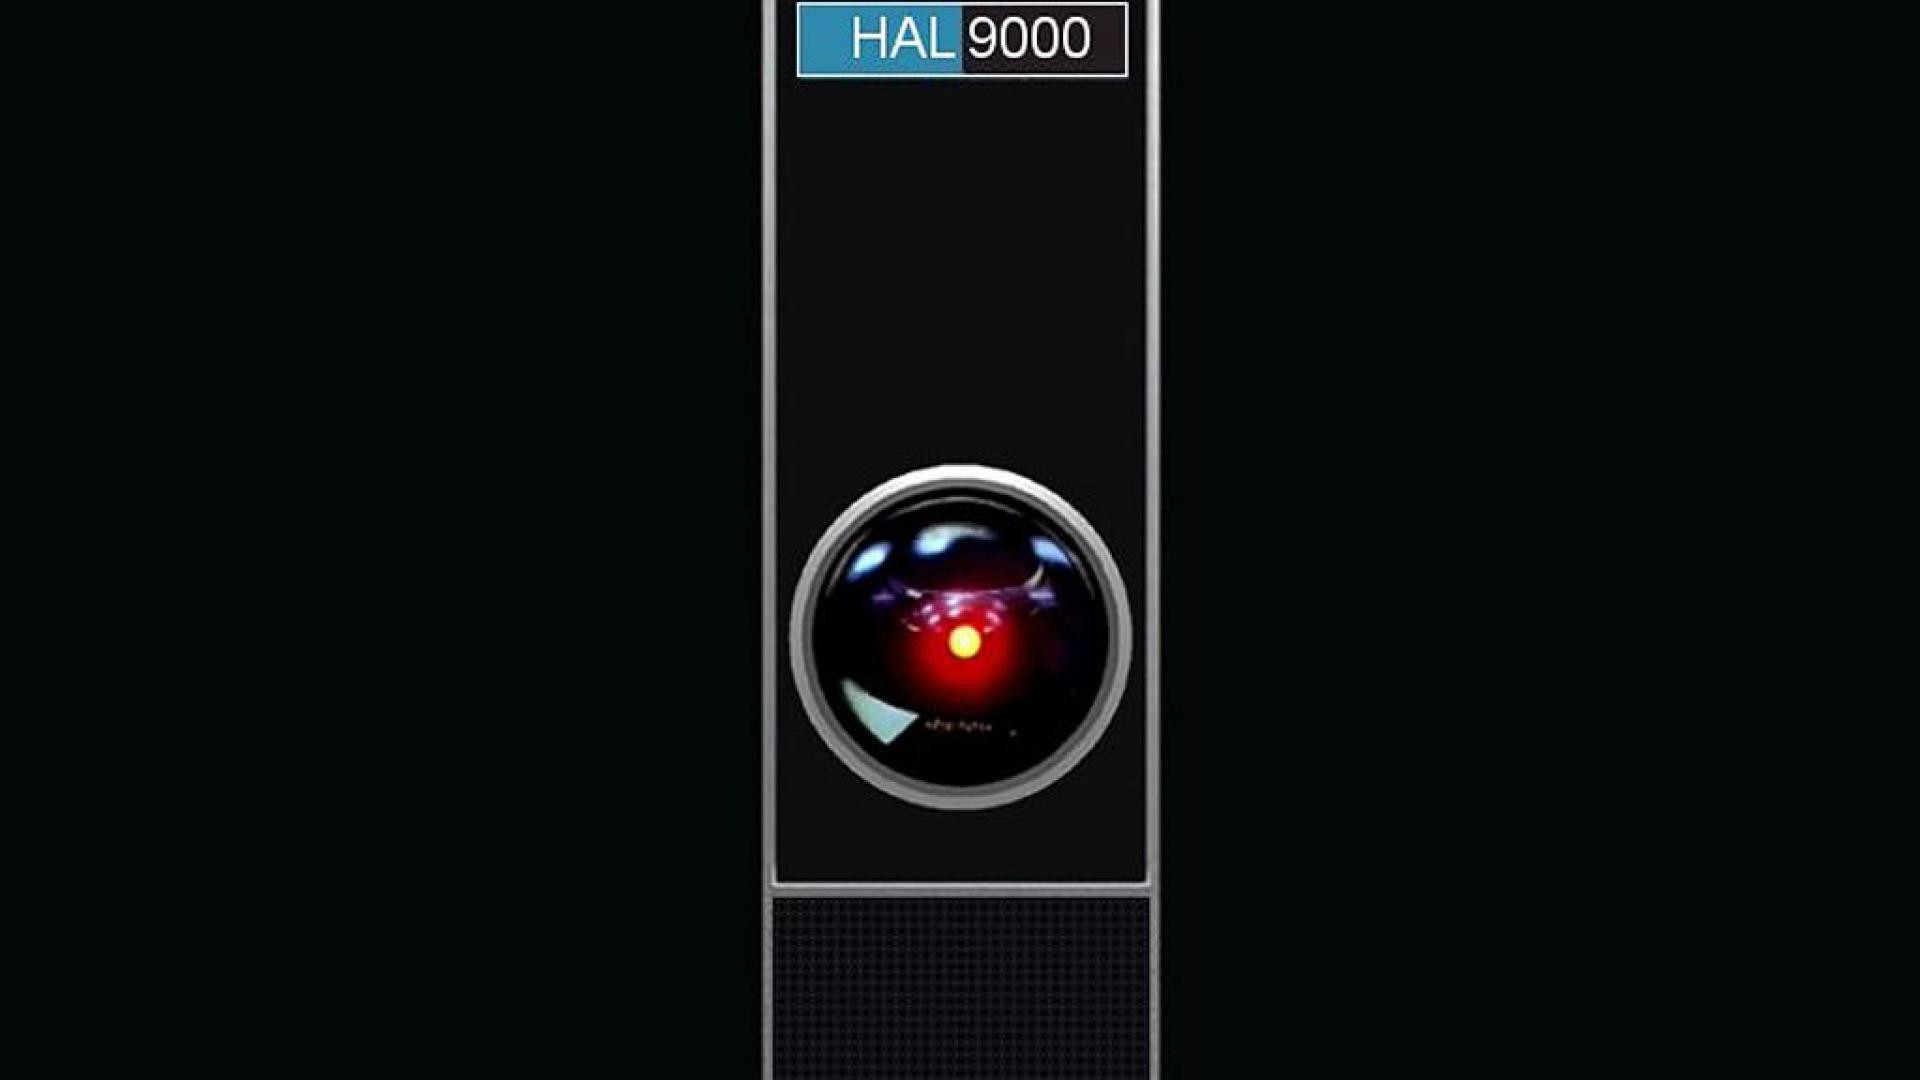 1920x1080 5. hal-9000-wallpaper-HD5-600x338